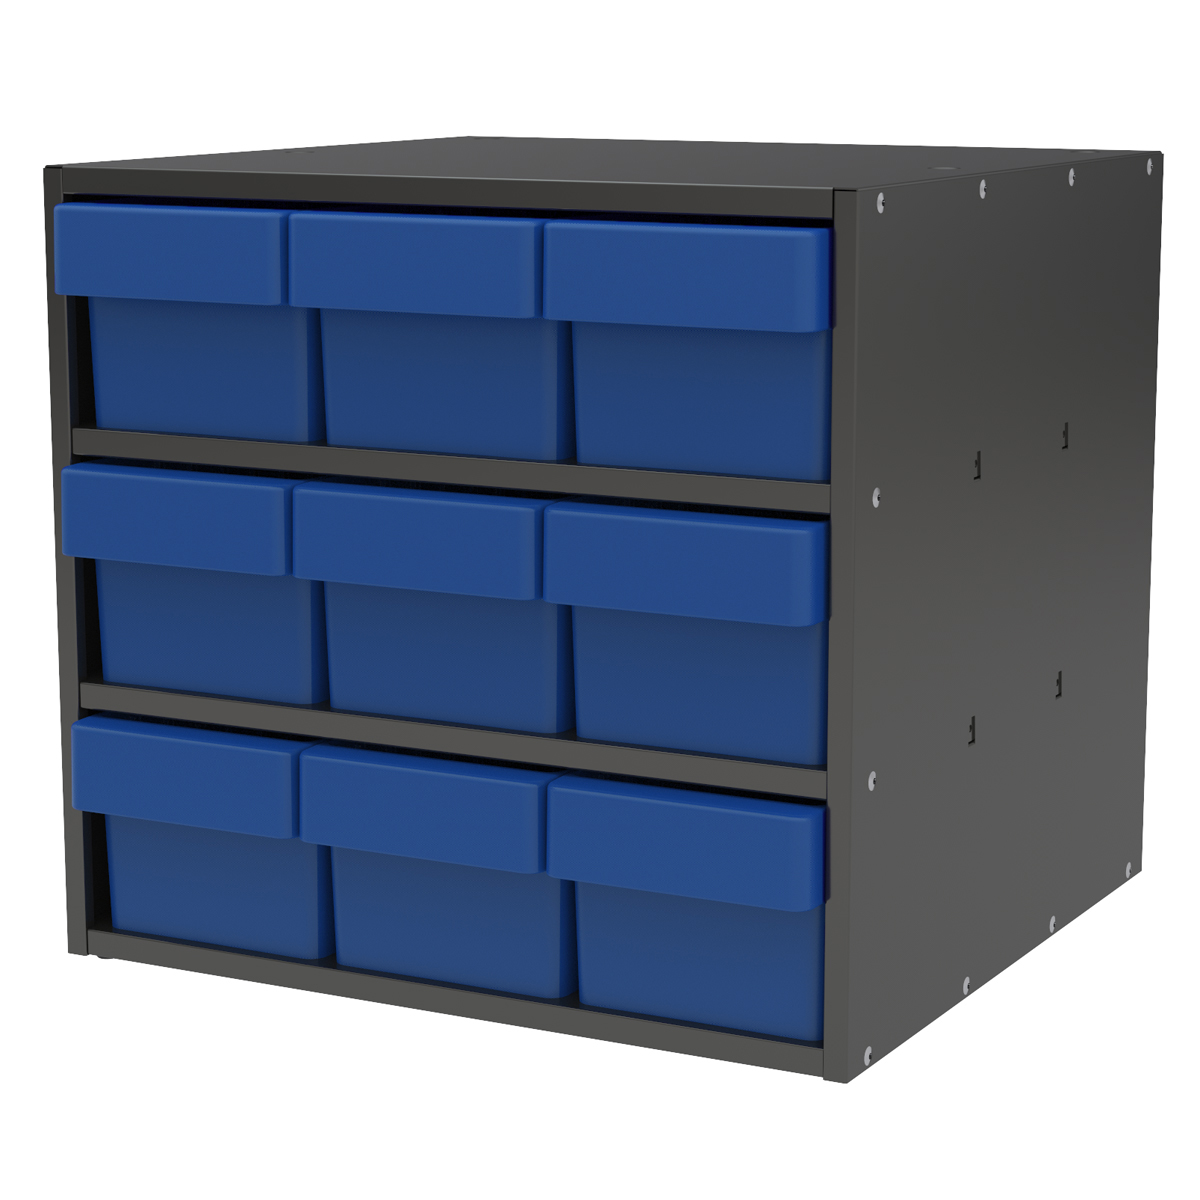 Item DISCONTINUED by Manufacturer.  Modular Cabinet, 18x17x16, 9 Drawers, Gray/Blue (AD1817C68BLU).  This item sold in carton quantities of 1.